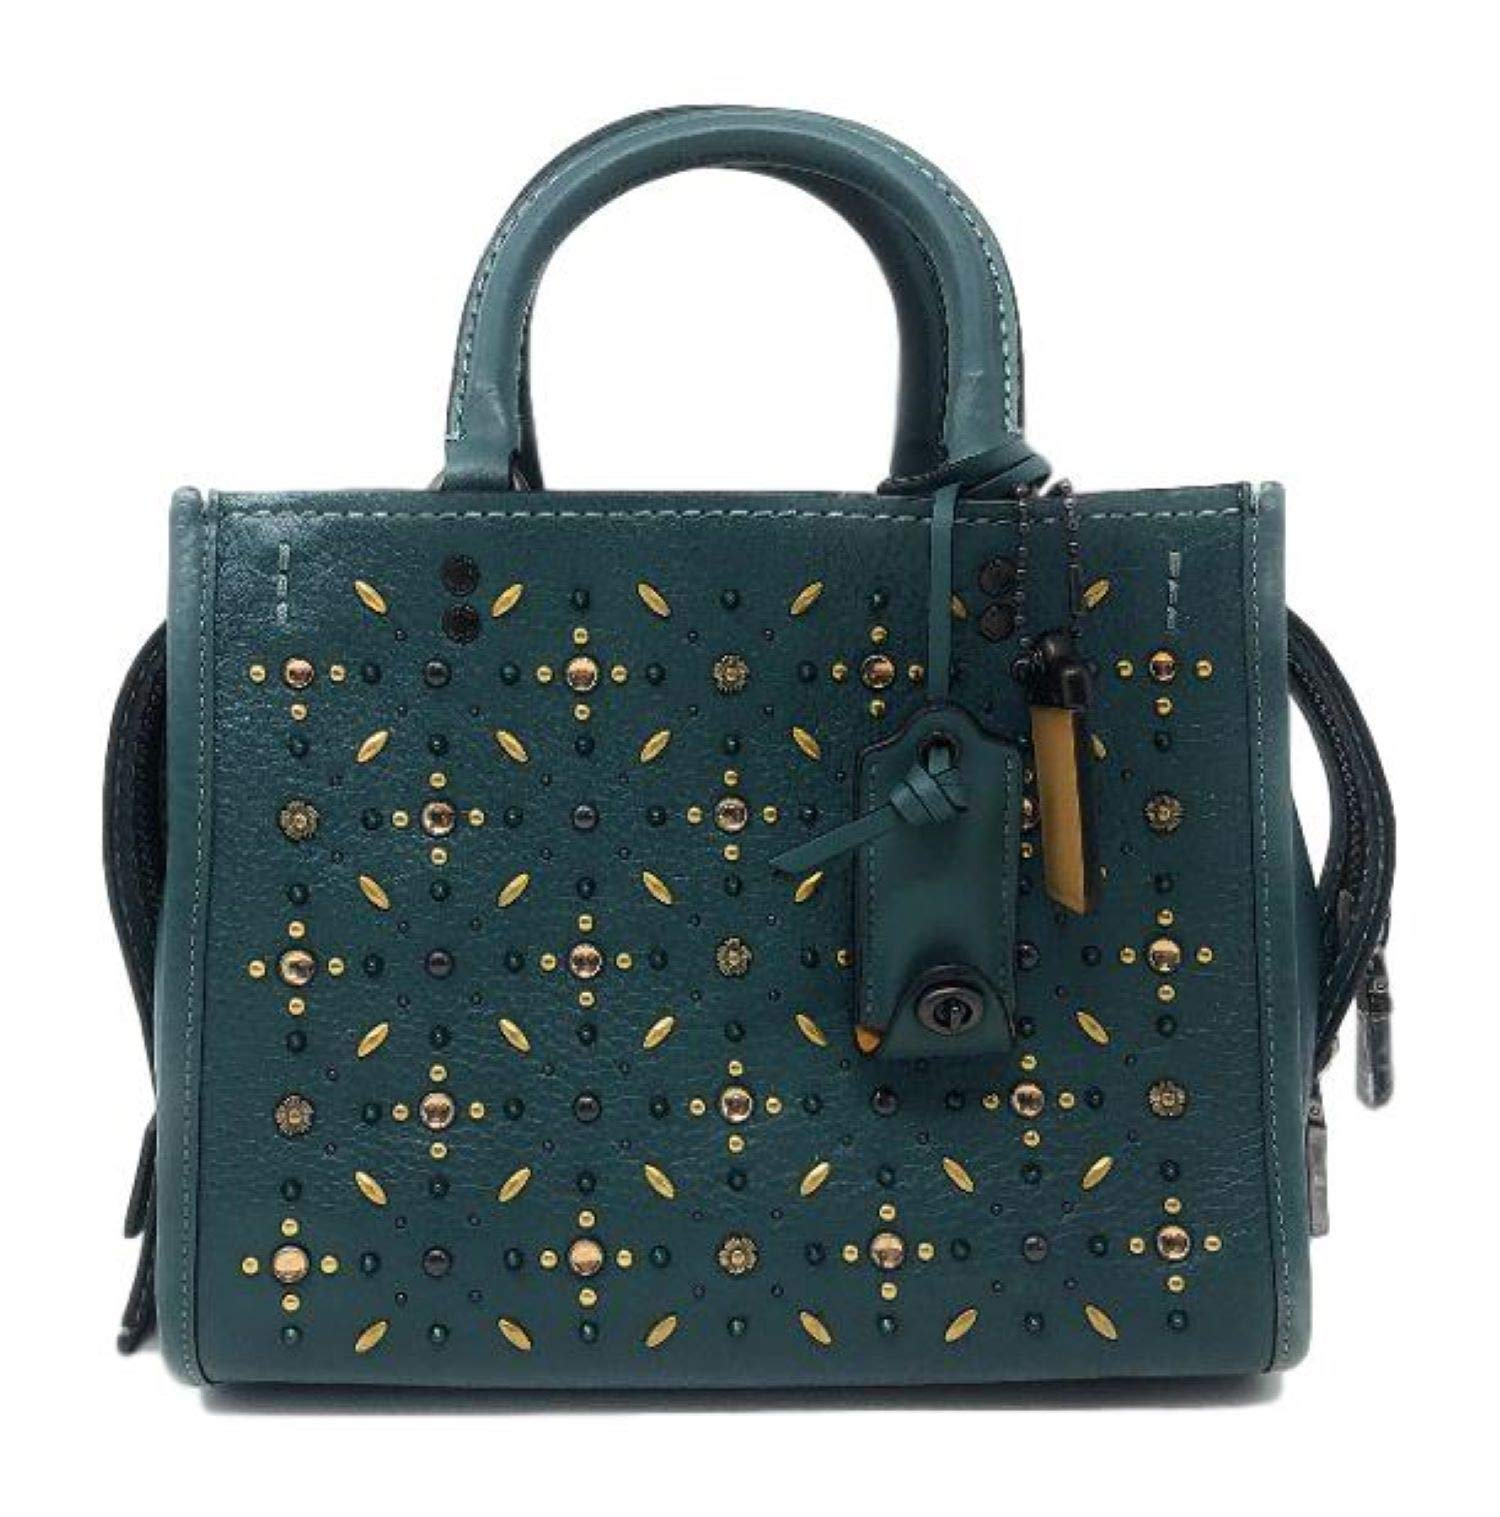 Coach 1941 Rogue 25 With Prairie Rivets BP/MIW Dark Turquoise - wiihuu